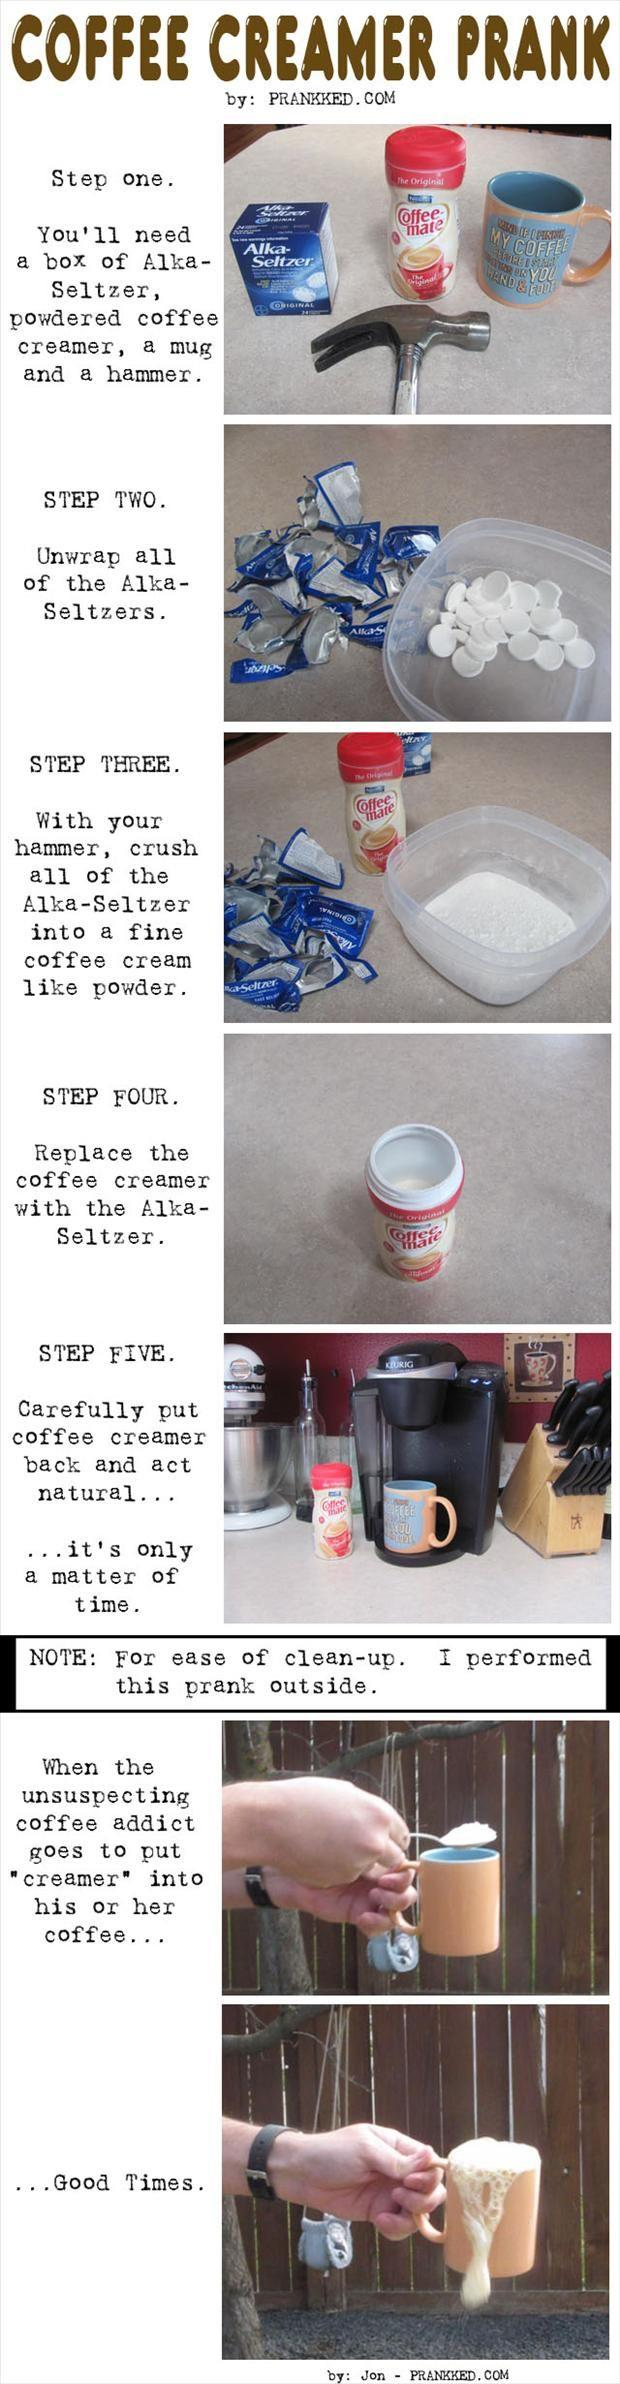 april fools coffee prank